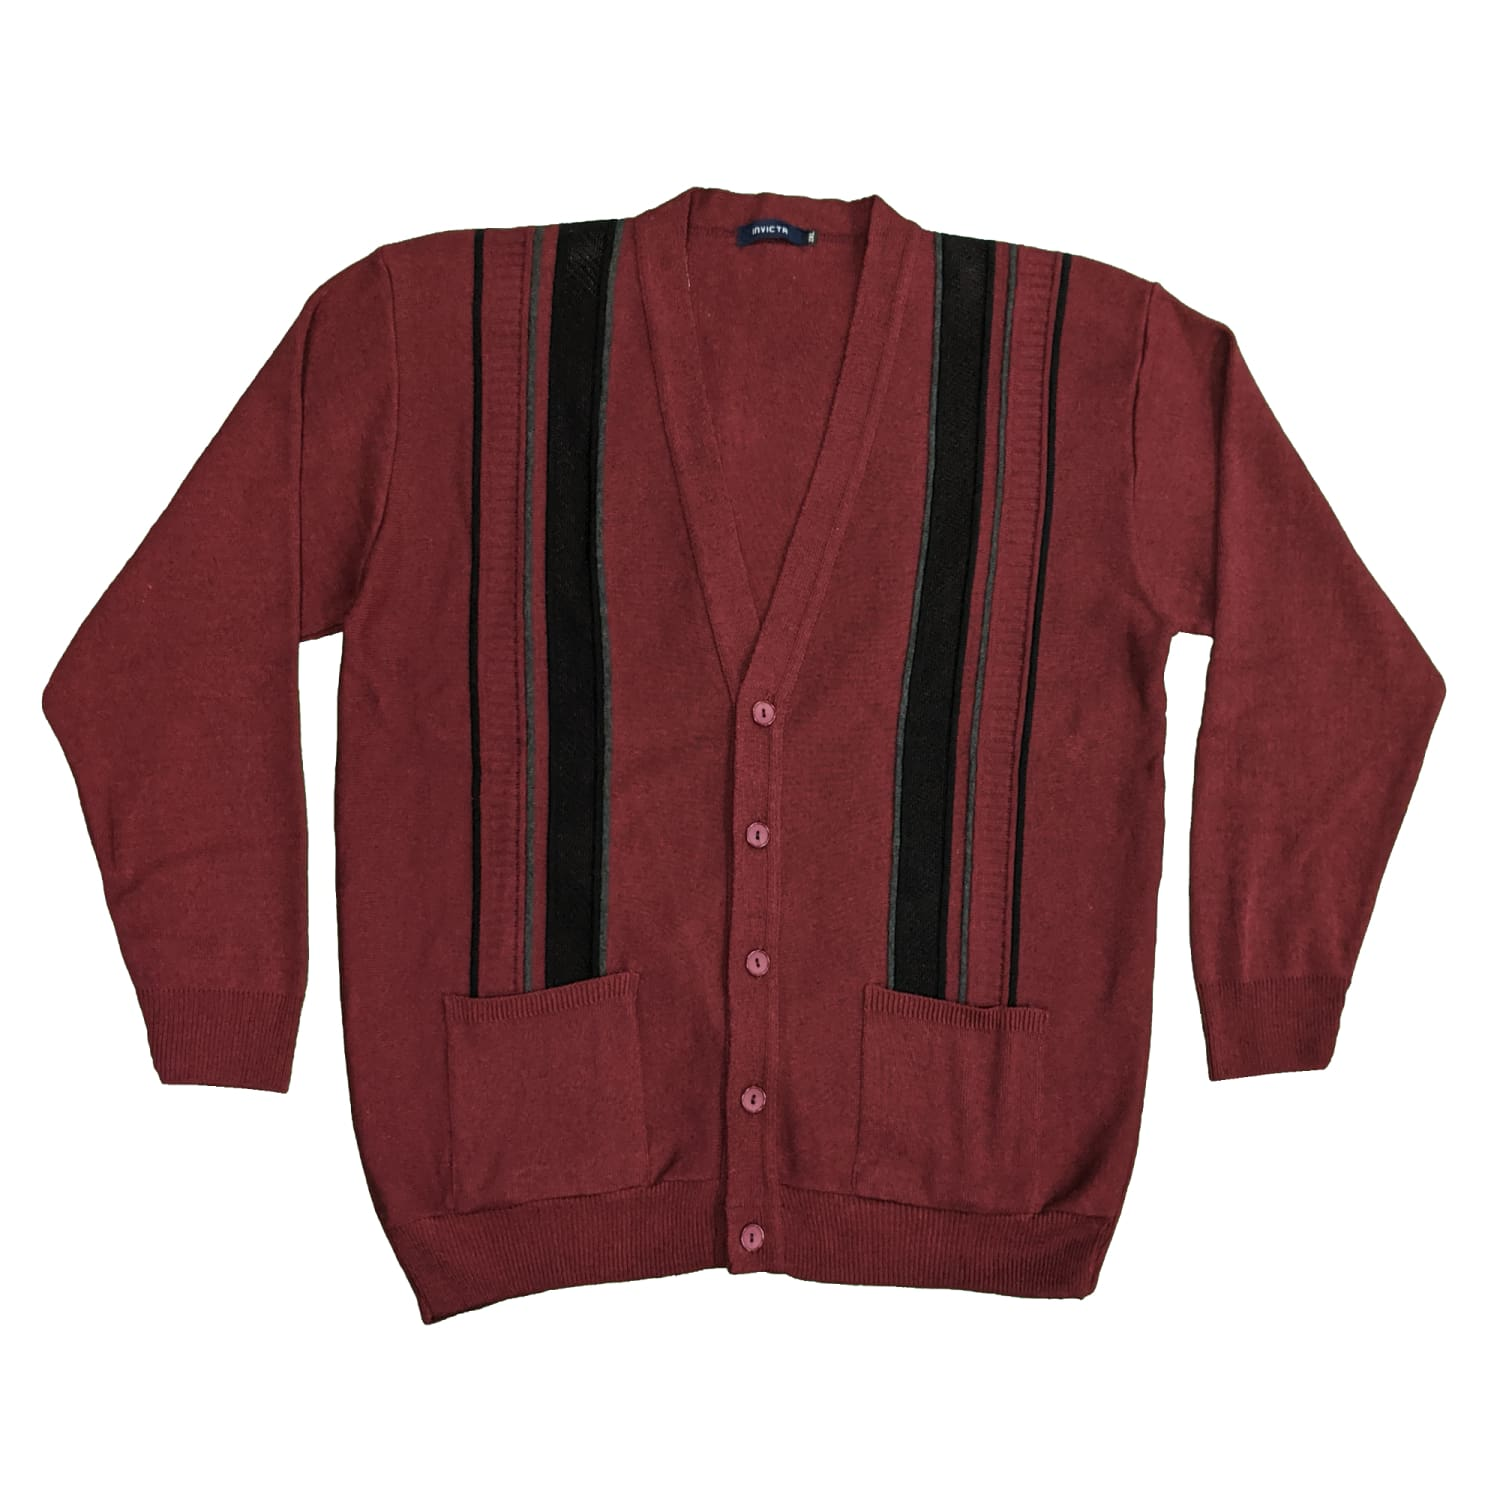 Invicta Cardigan - 02470 - Wine 1